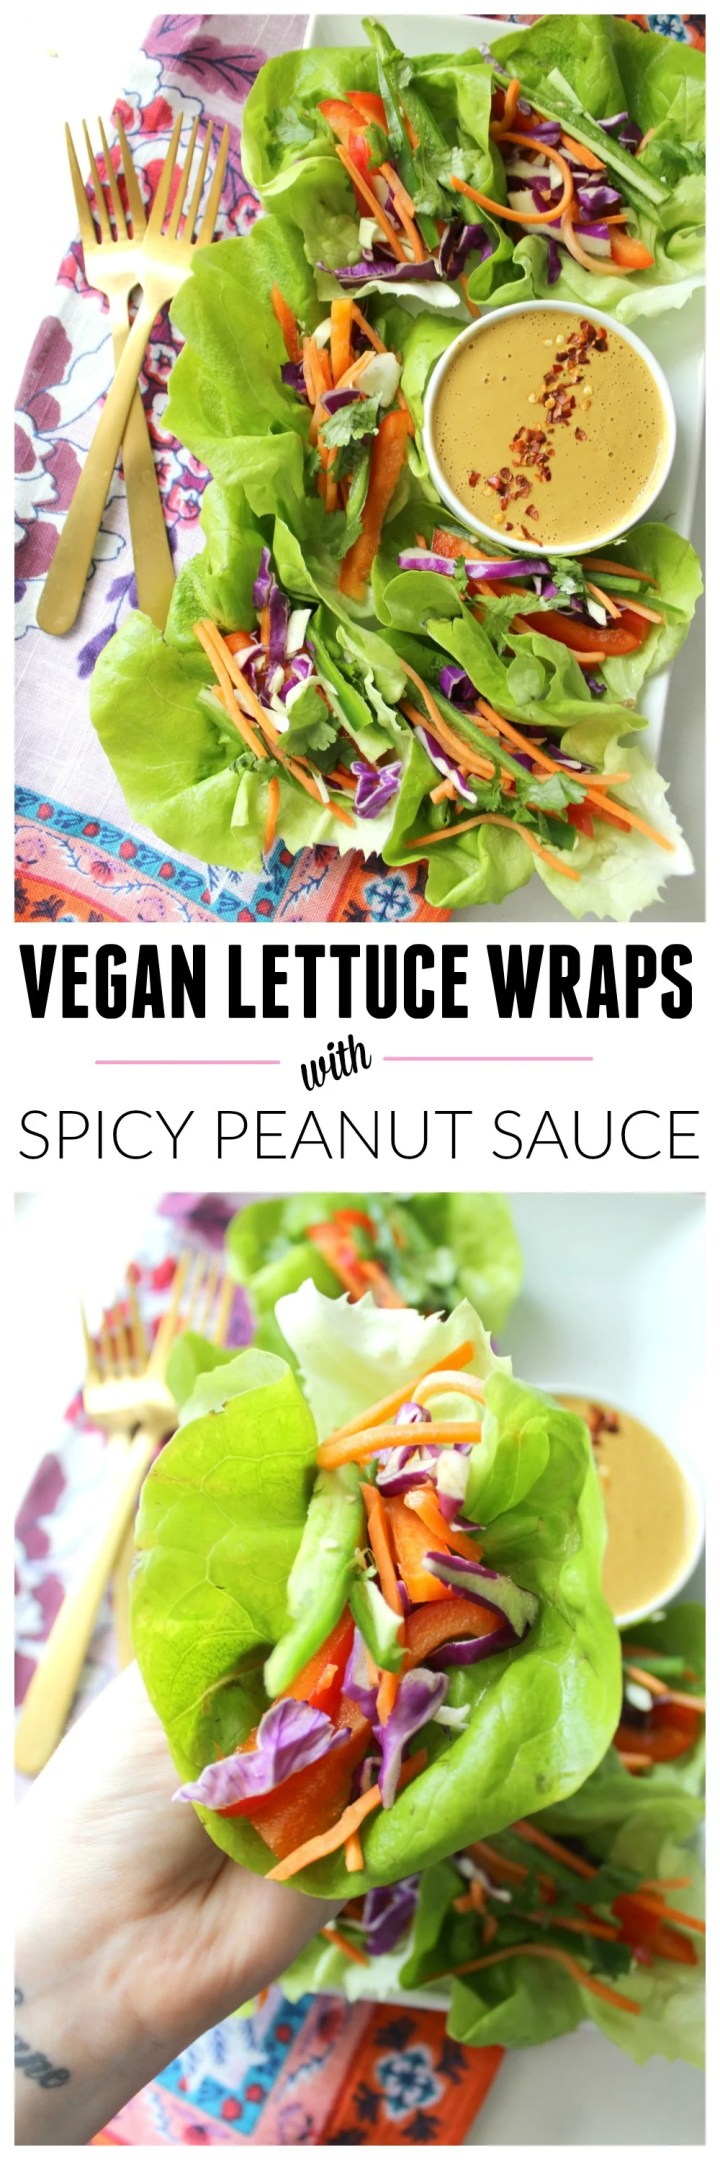 Vegan Lettuce Wraps with Spicy Peanut Sauce | Vegan + GF + Raw | ThisSavoryVegan.com